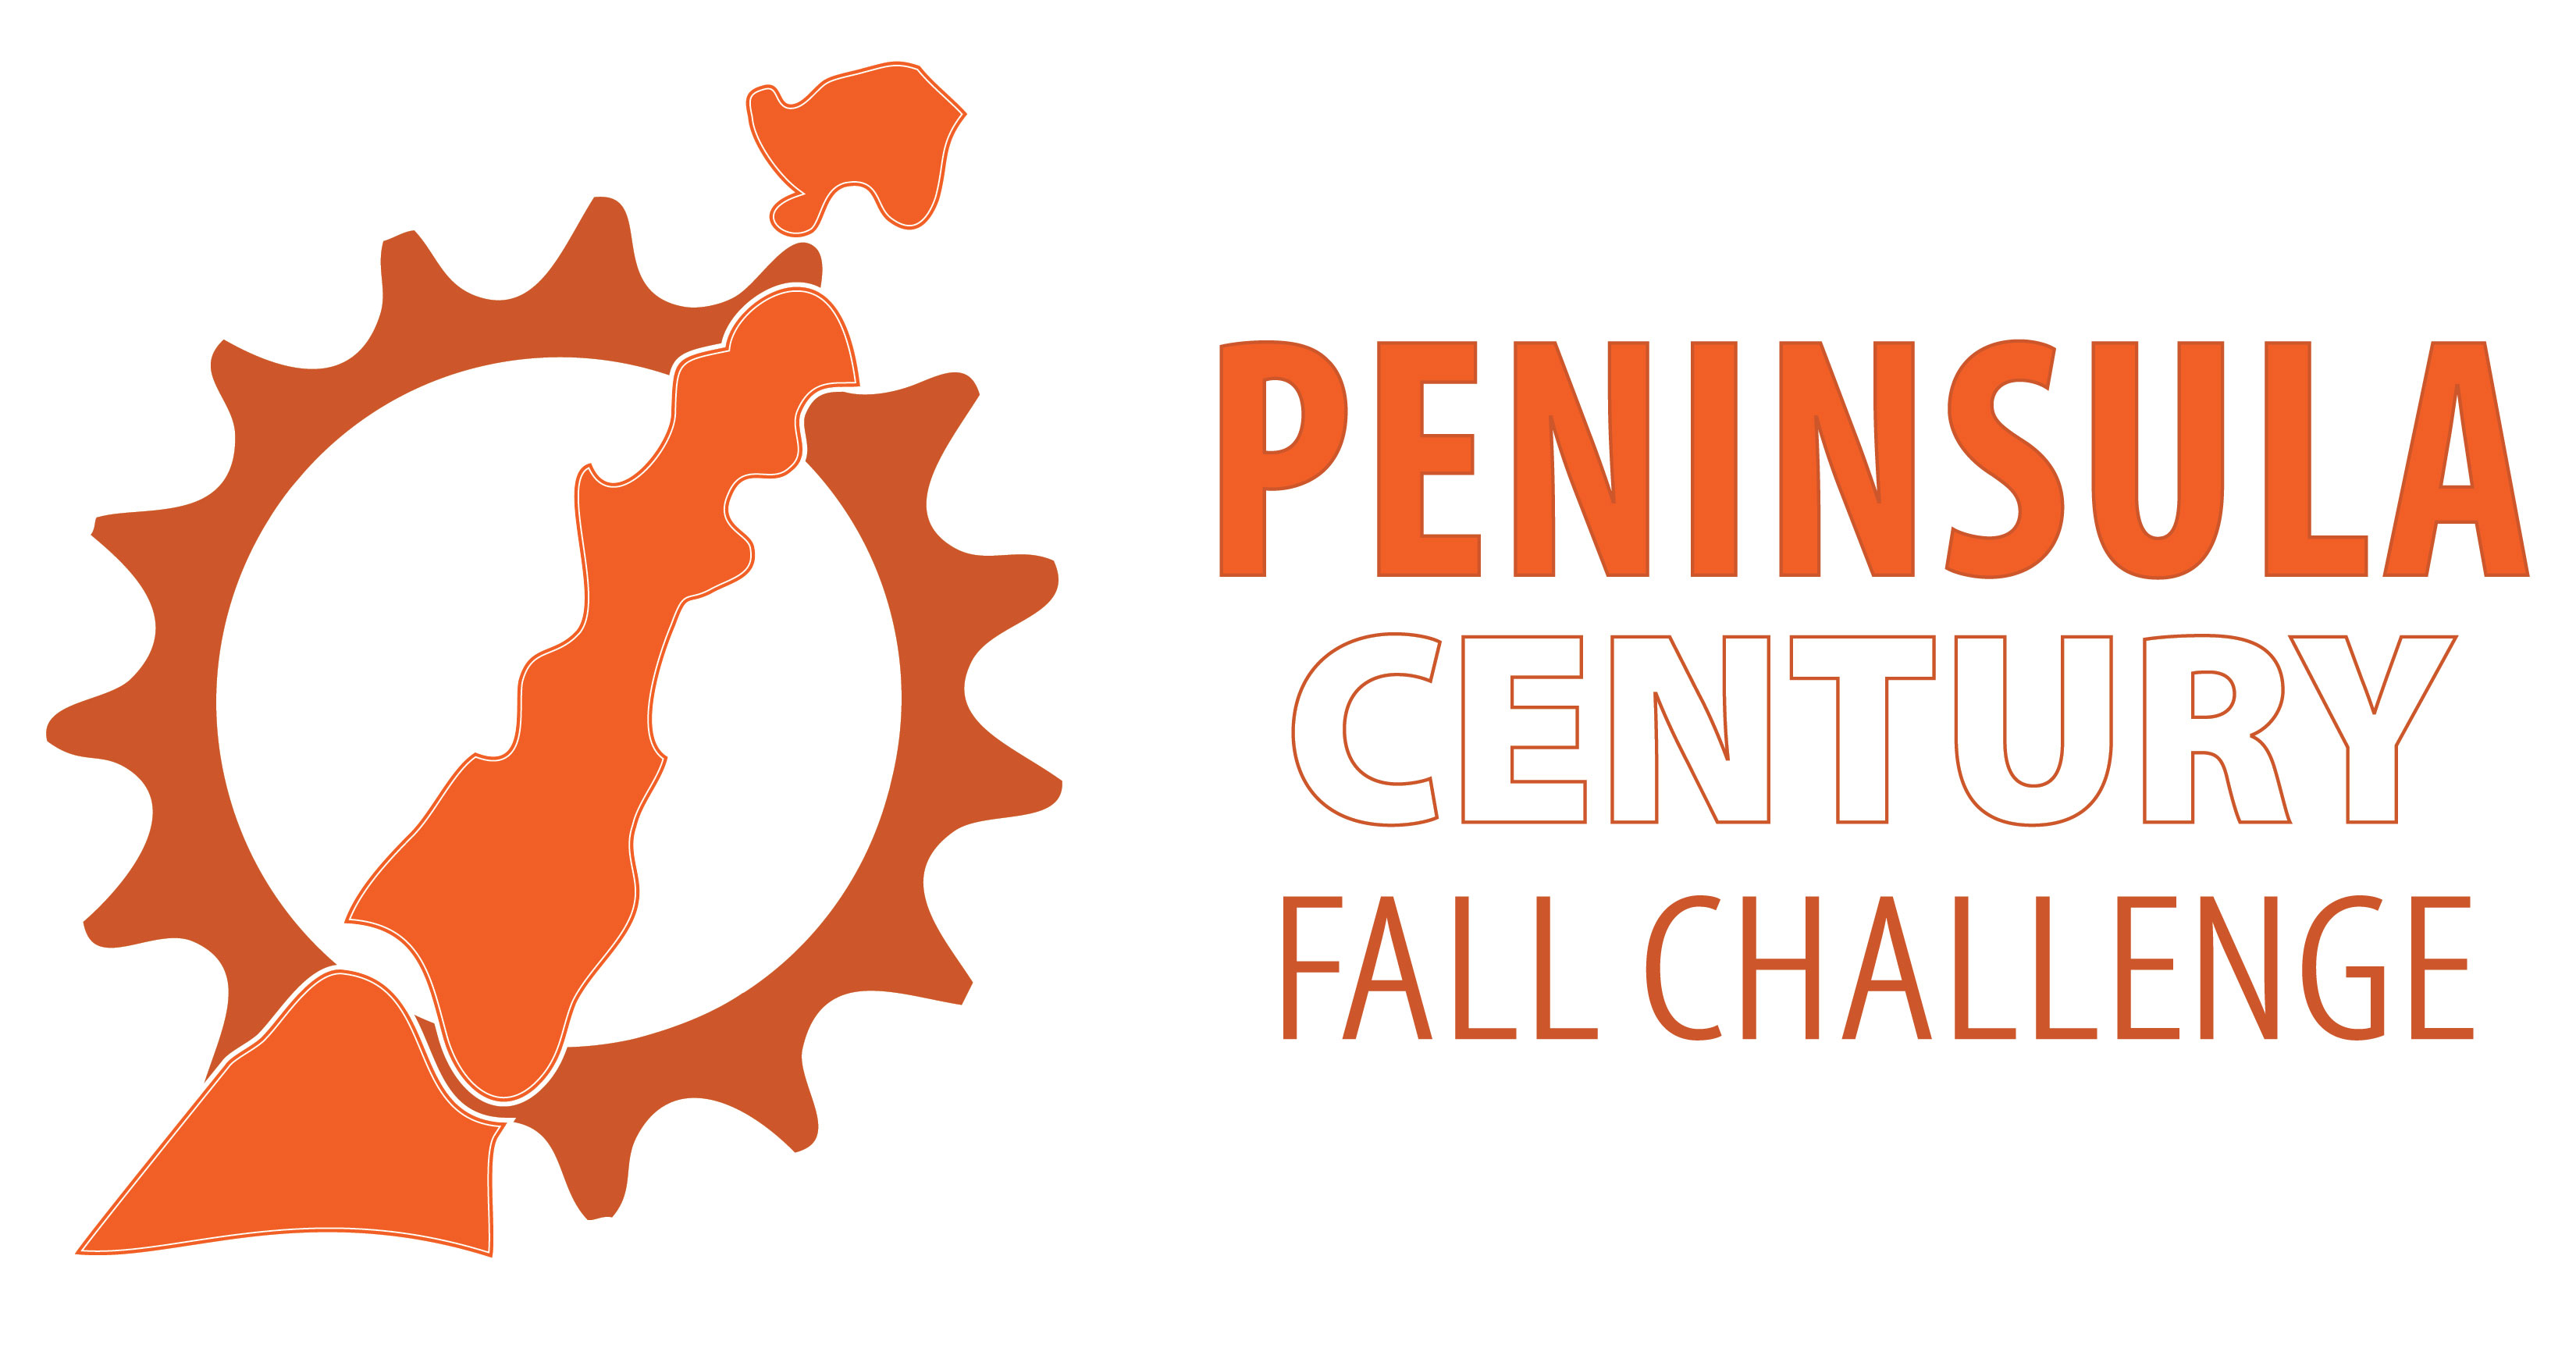 Peninsula Century Fall Challenge — Sister Bay's Door County century ride